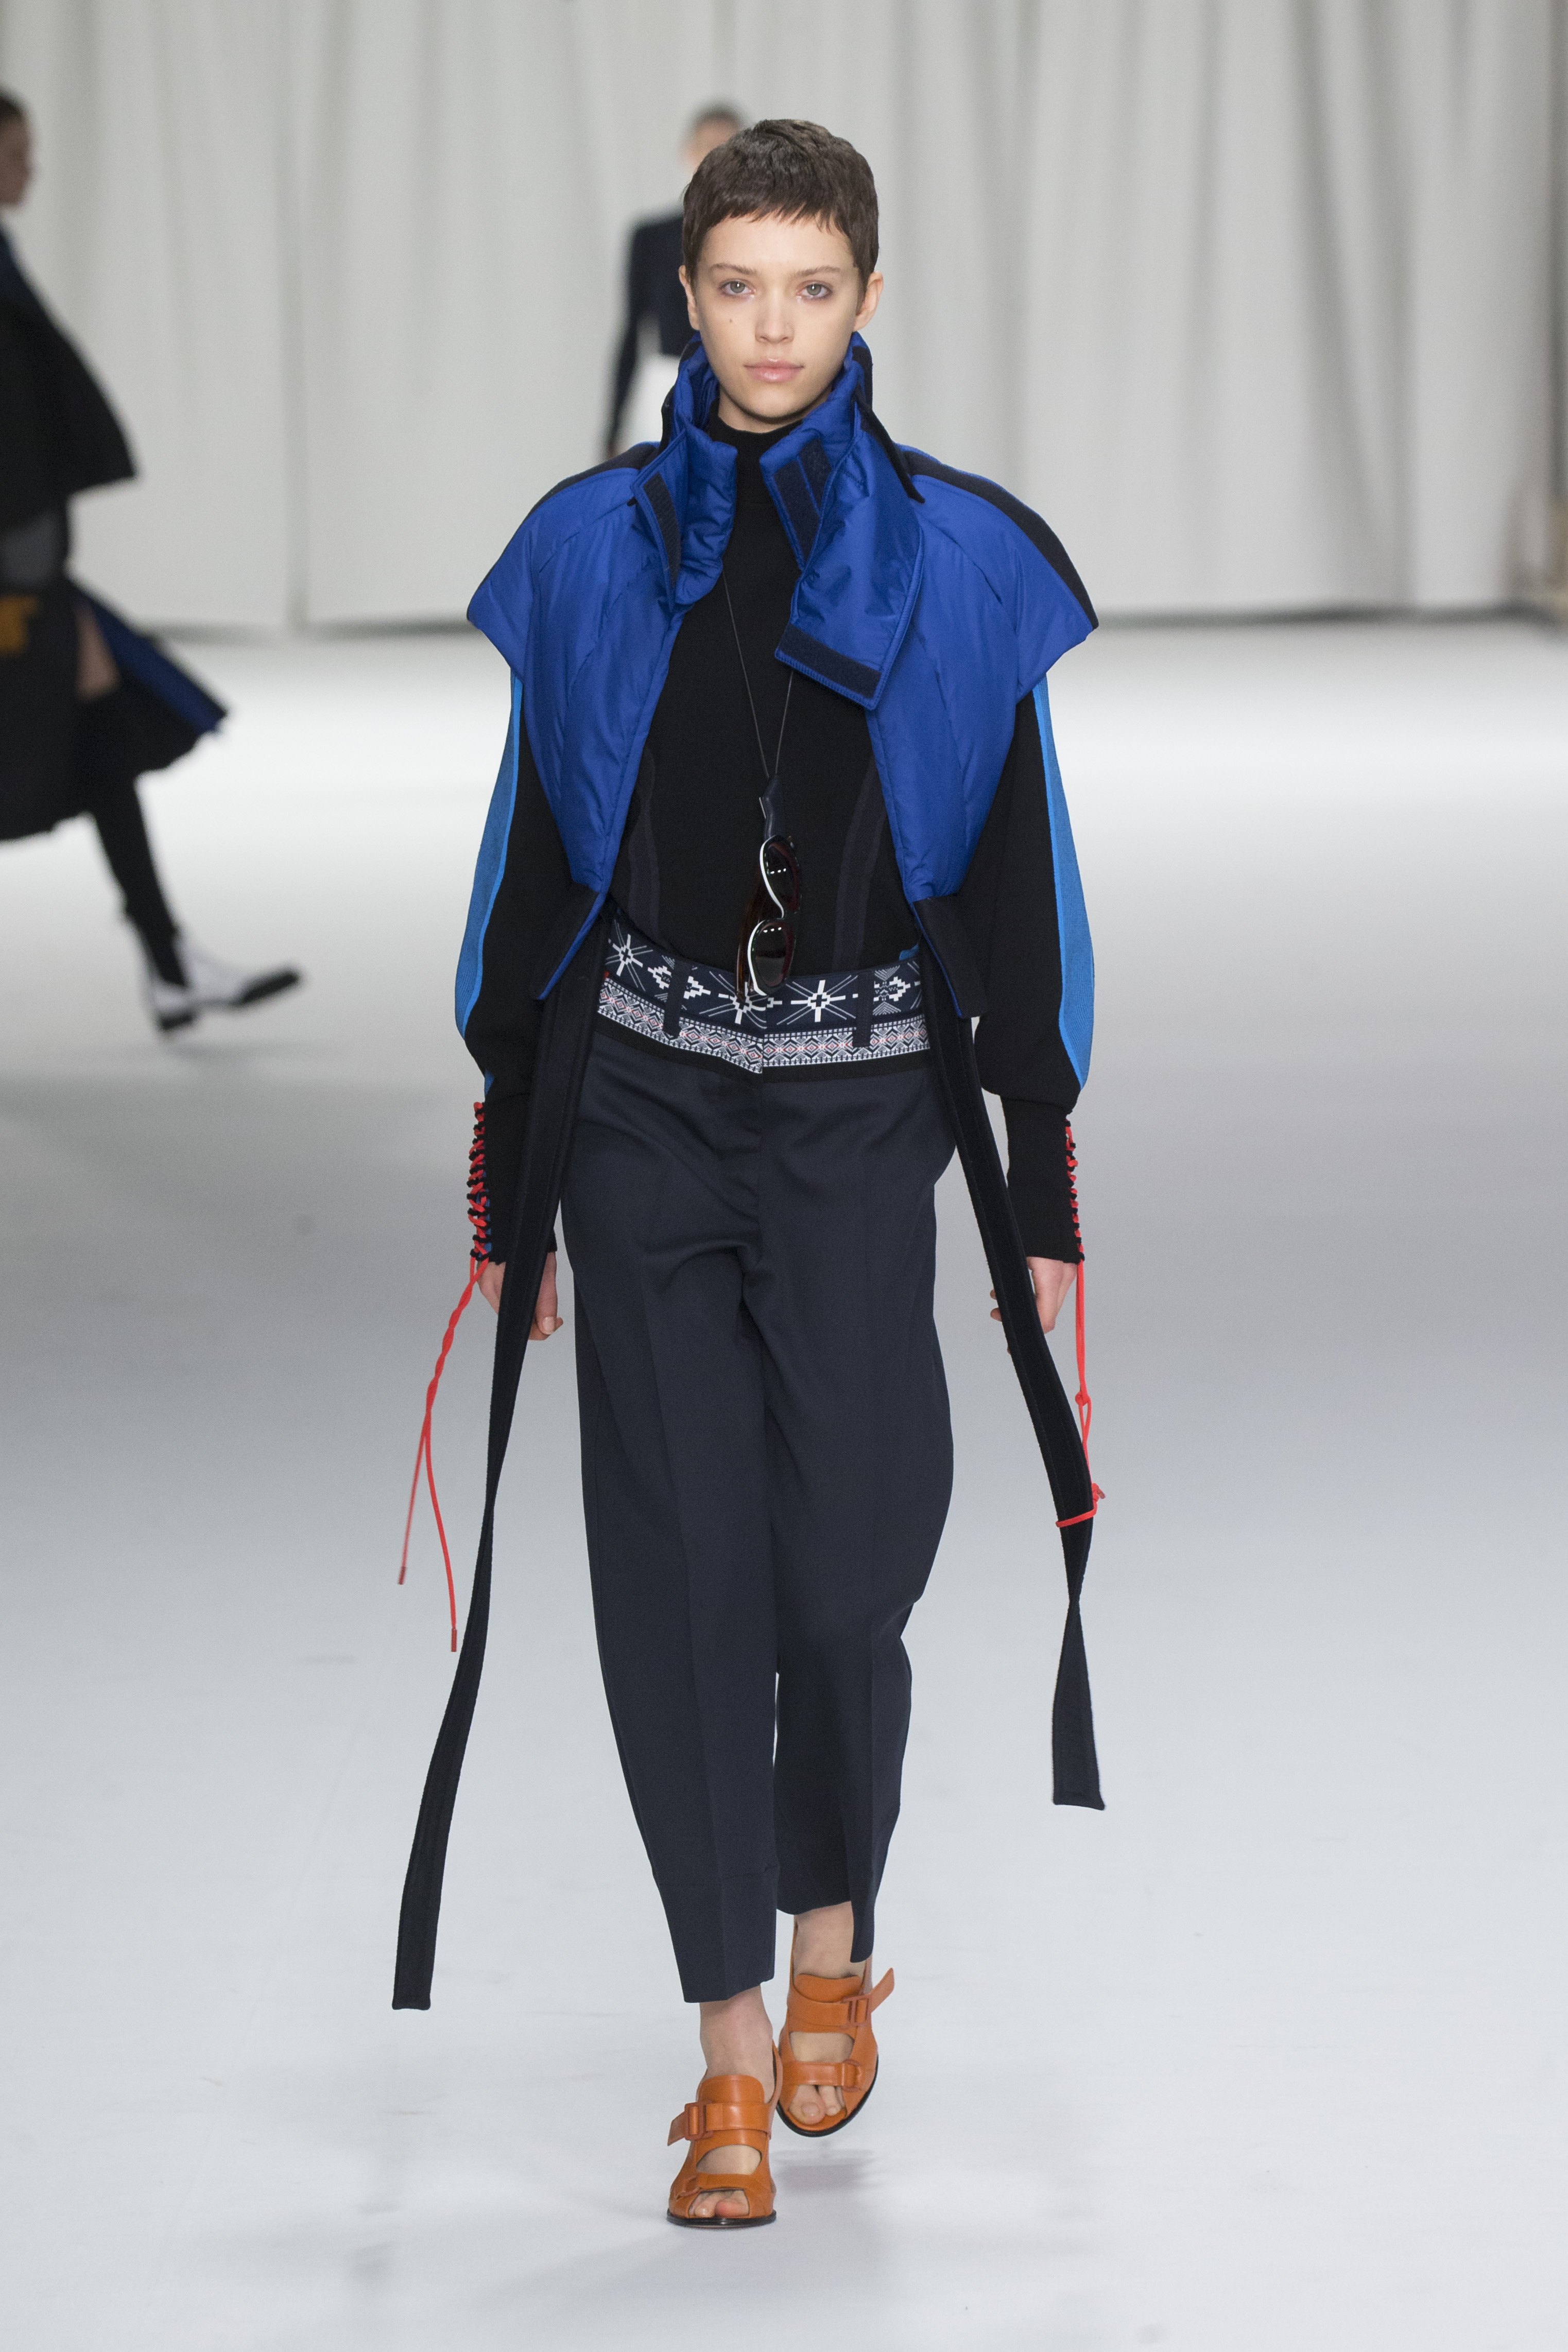 CLASSICS TEAMS UP WITH TECHNOLOGY AT SPORTMAX A/W 2018